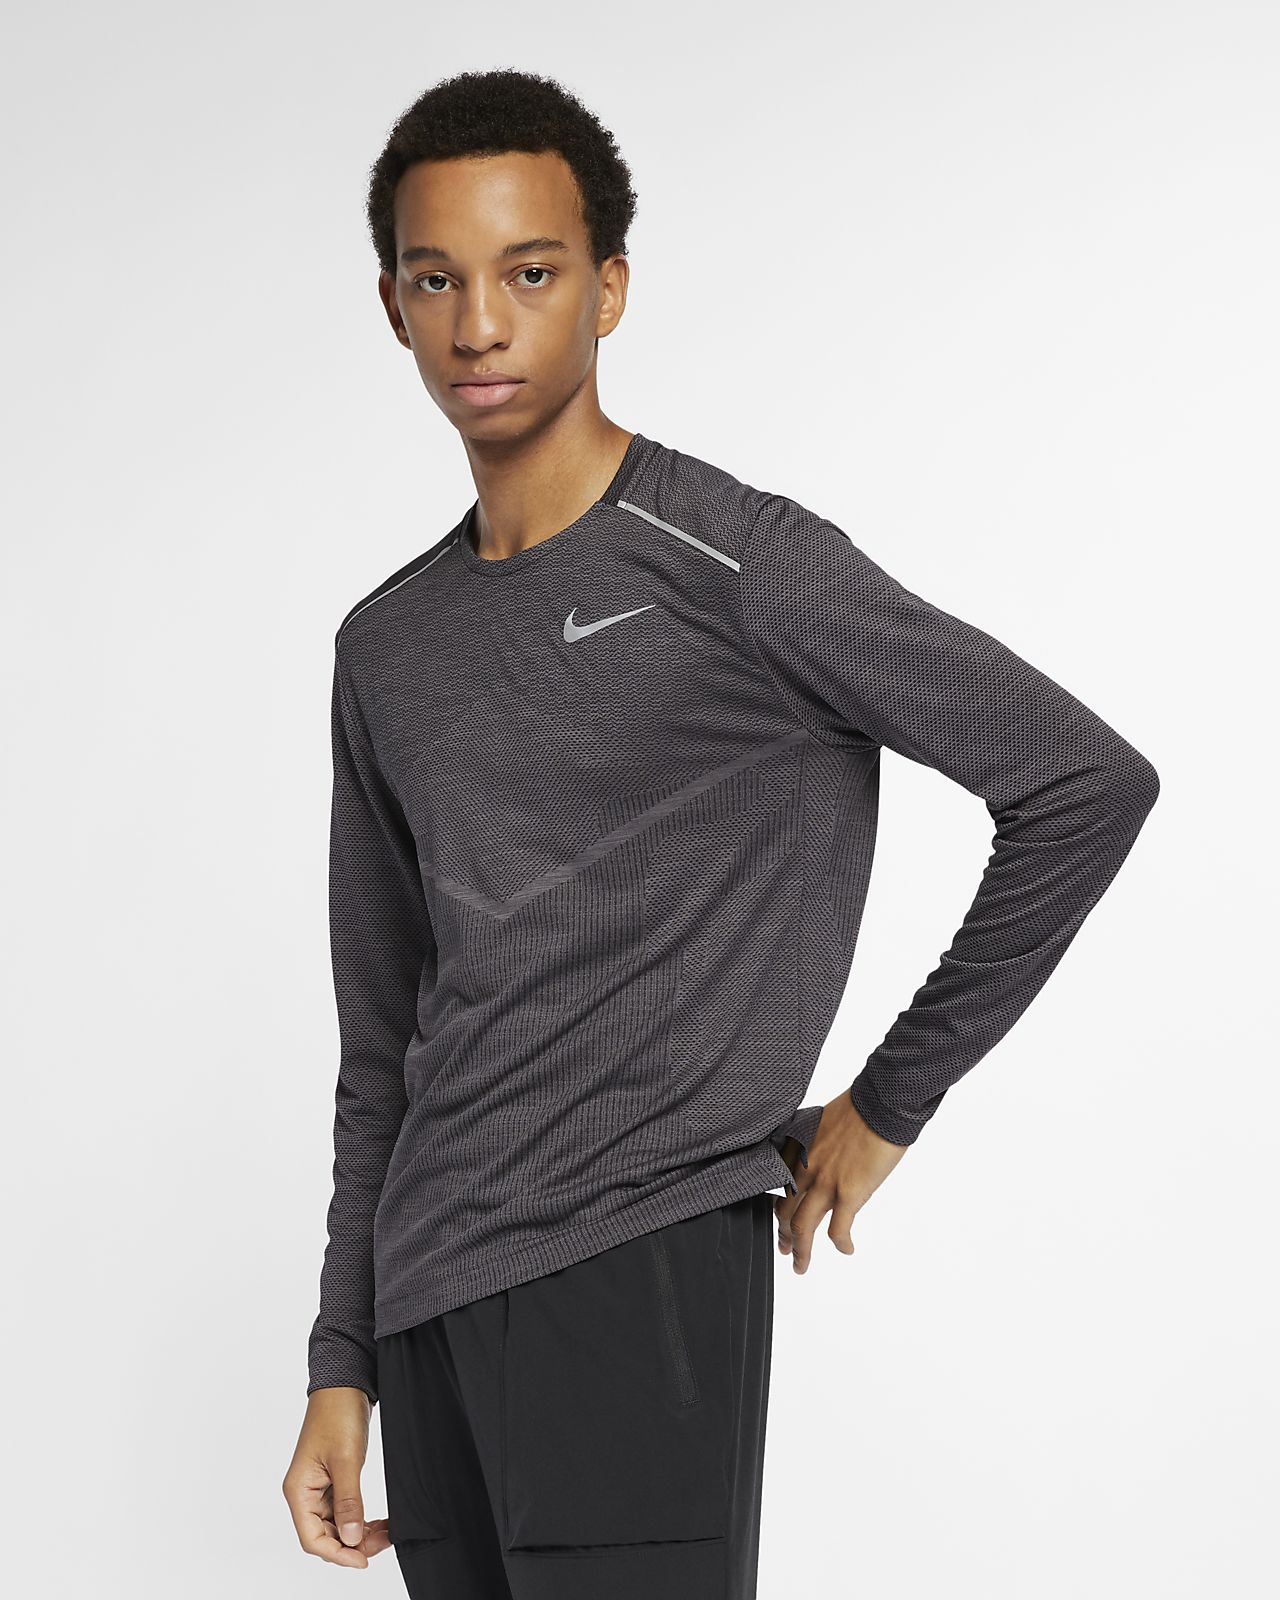 02fb0adb Nike TechKnit Ultra Men's Long-Sleeve Running Top. Nike.com